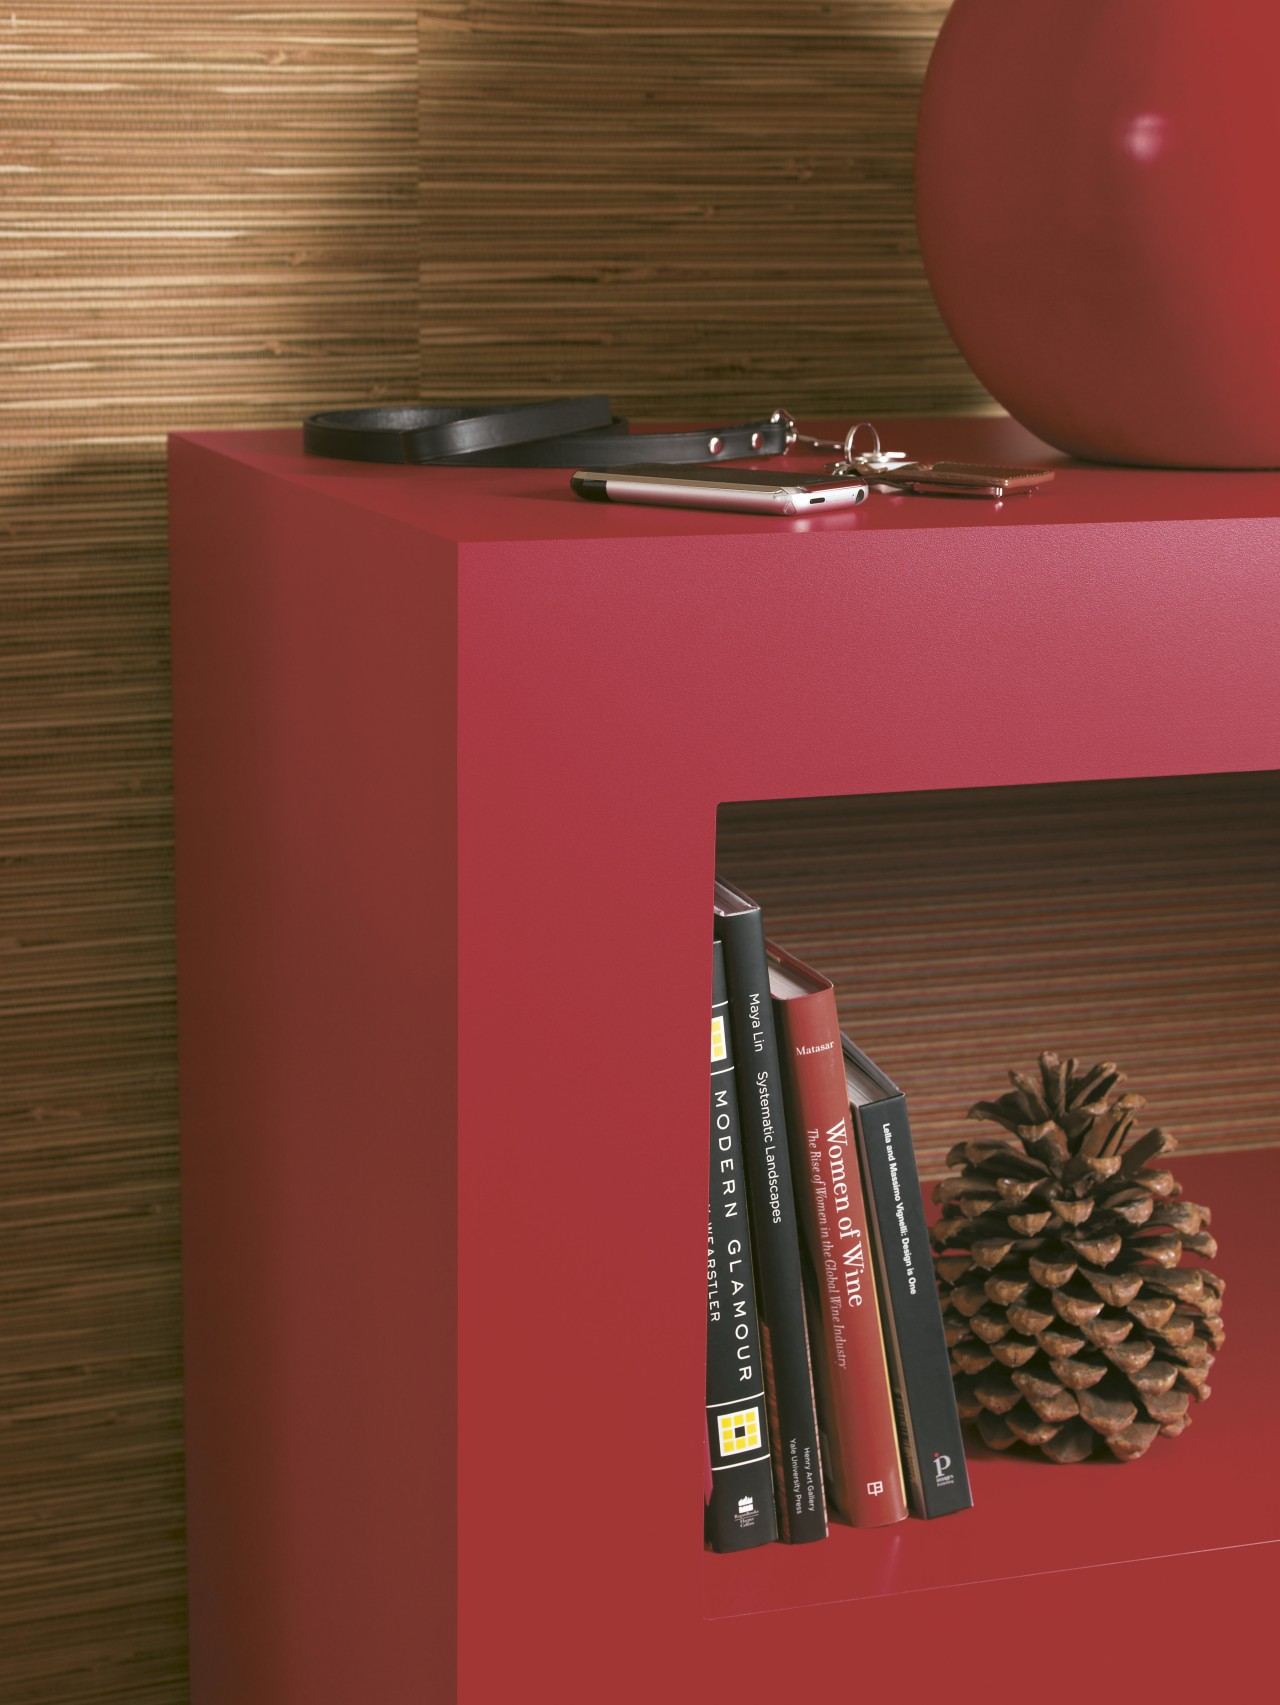 Fashion forward  Laminex Formica ColorCore orange, product, product design, shelf, table, red, brown